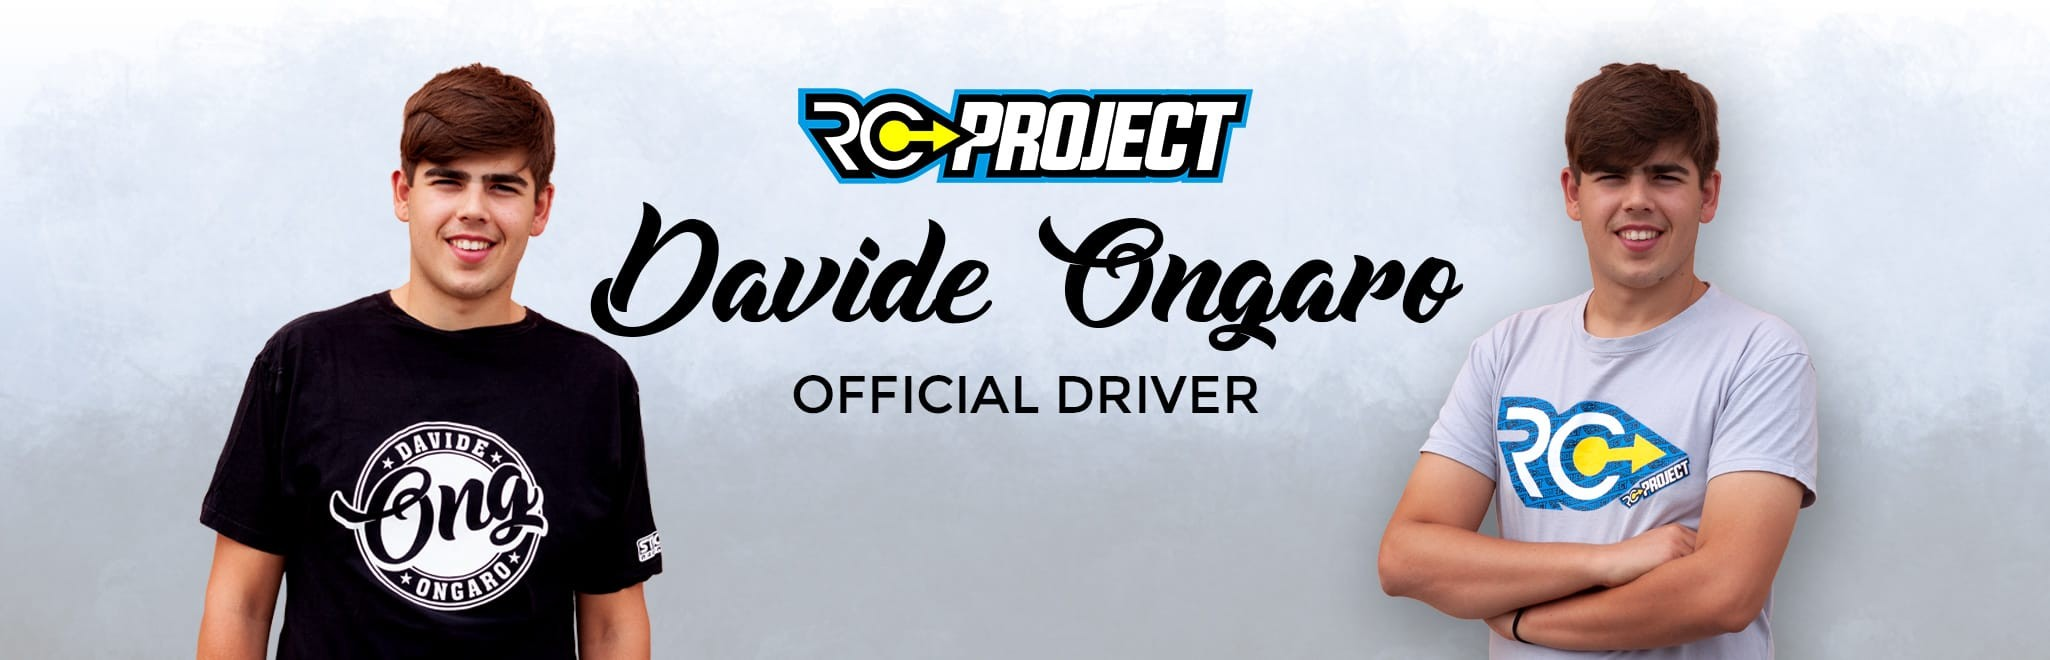 Davide Ongaro Official Driver